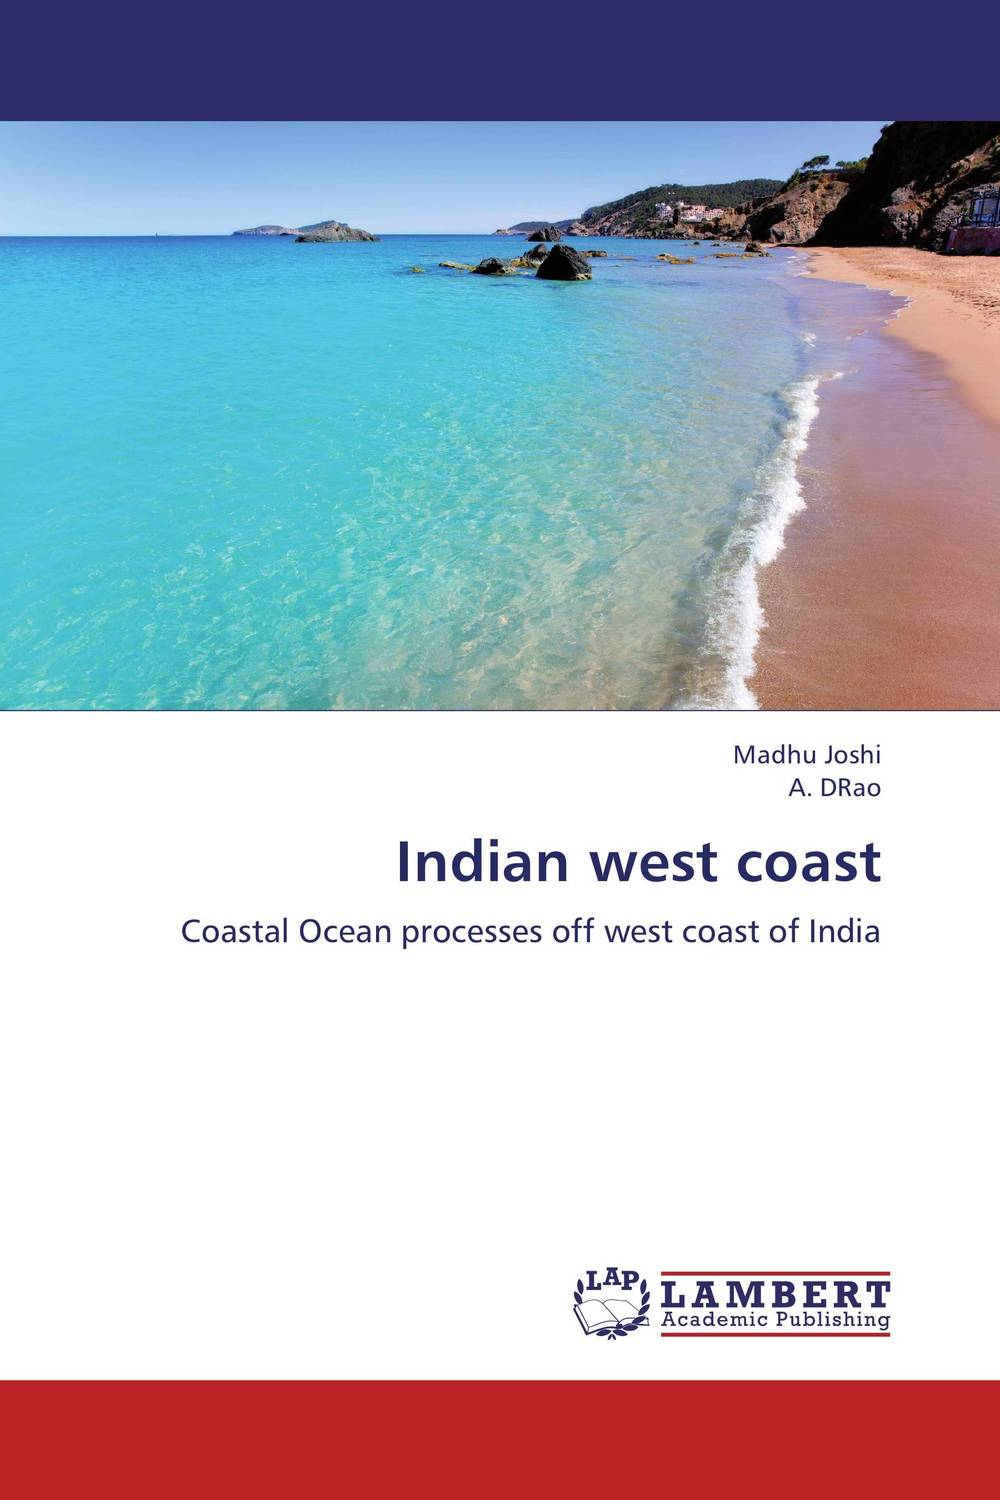 Indian west coast montgomery equatorial waters and currents at 150 w in july–au gust 1952